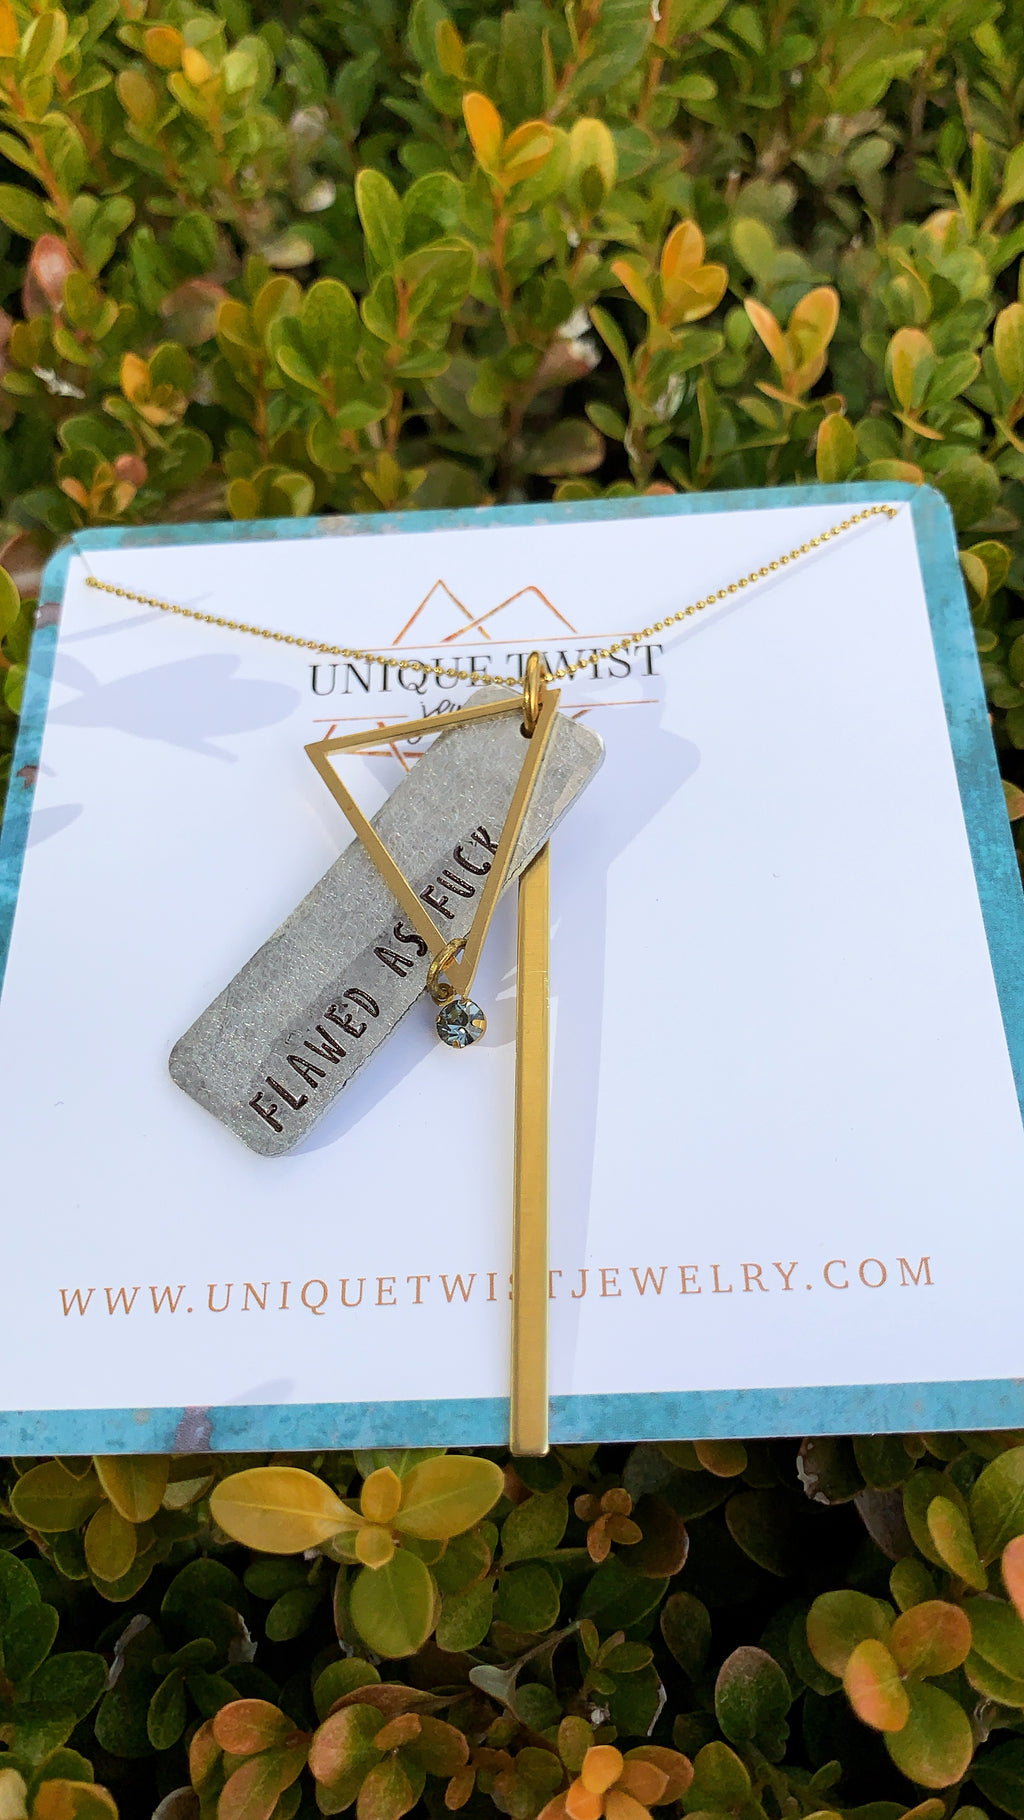 Unique Twist Jewelry - Flawed As Fuck Necklace